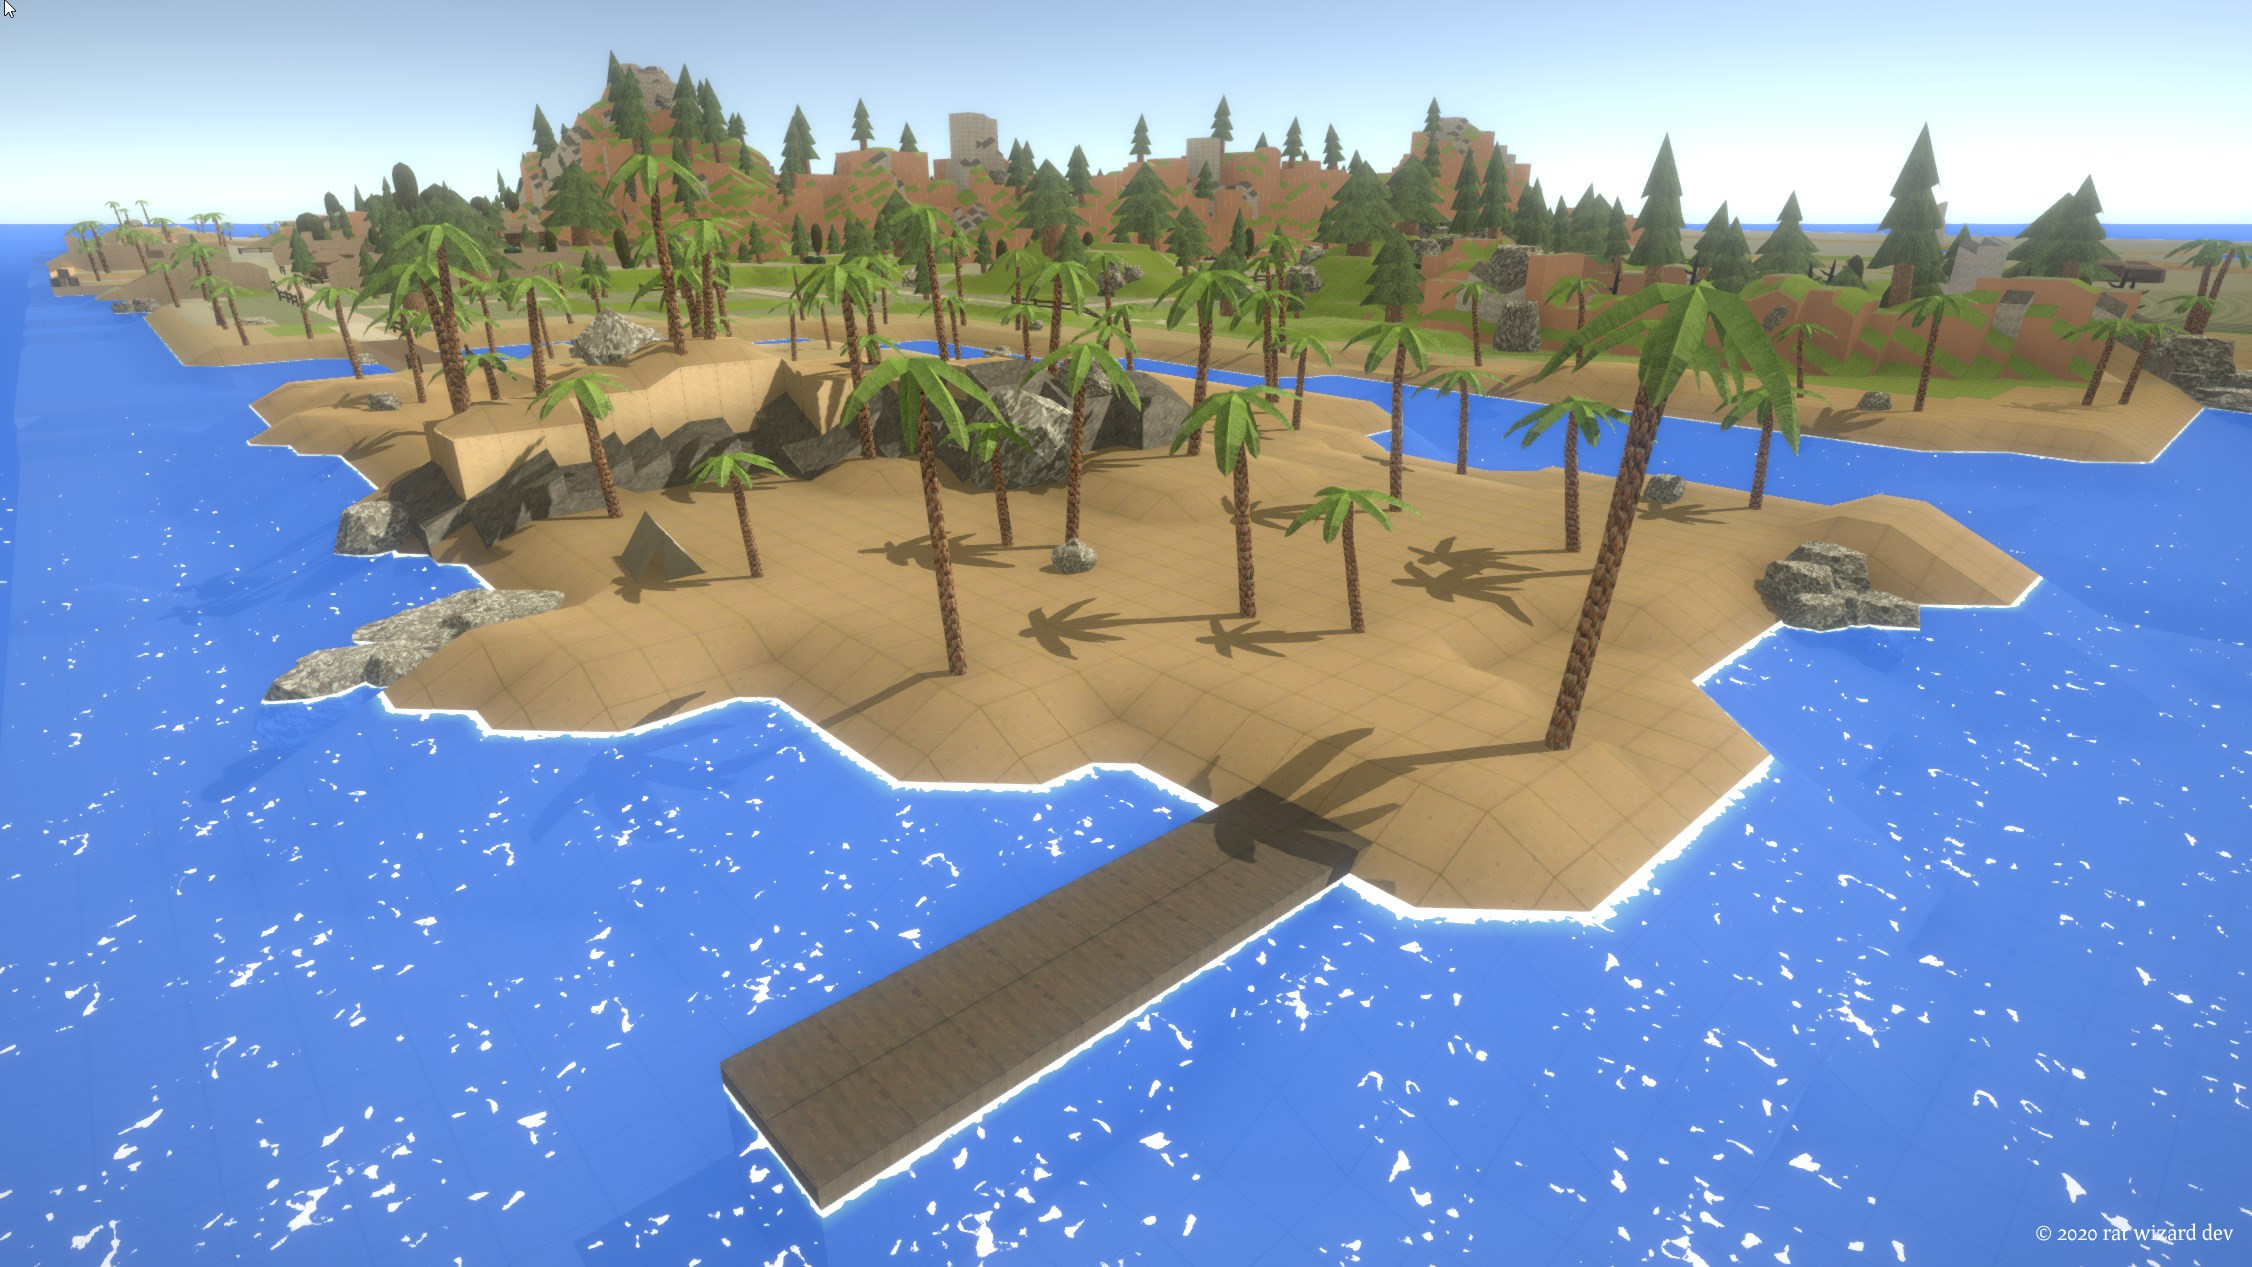 A view of a beach area on Antorum Isle